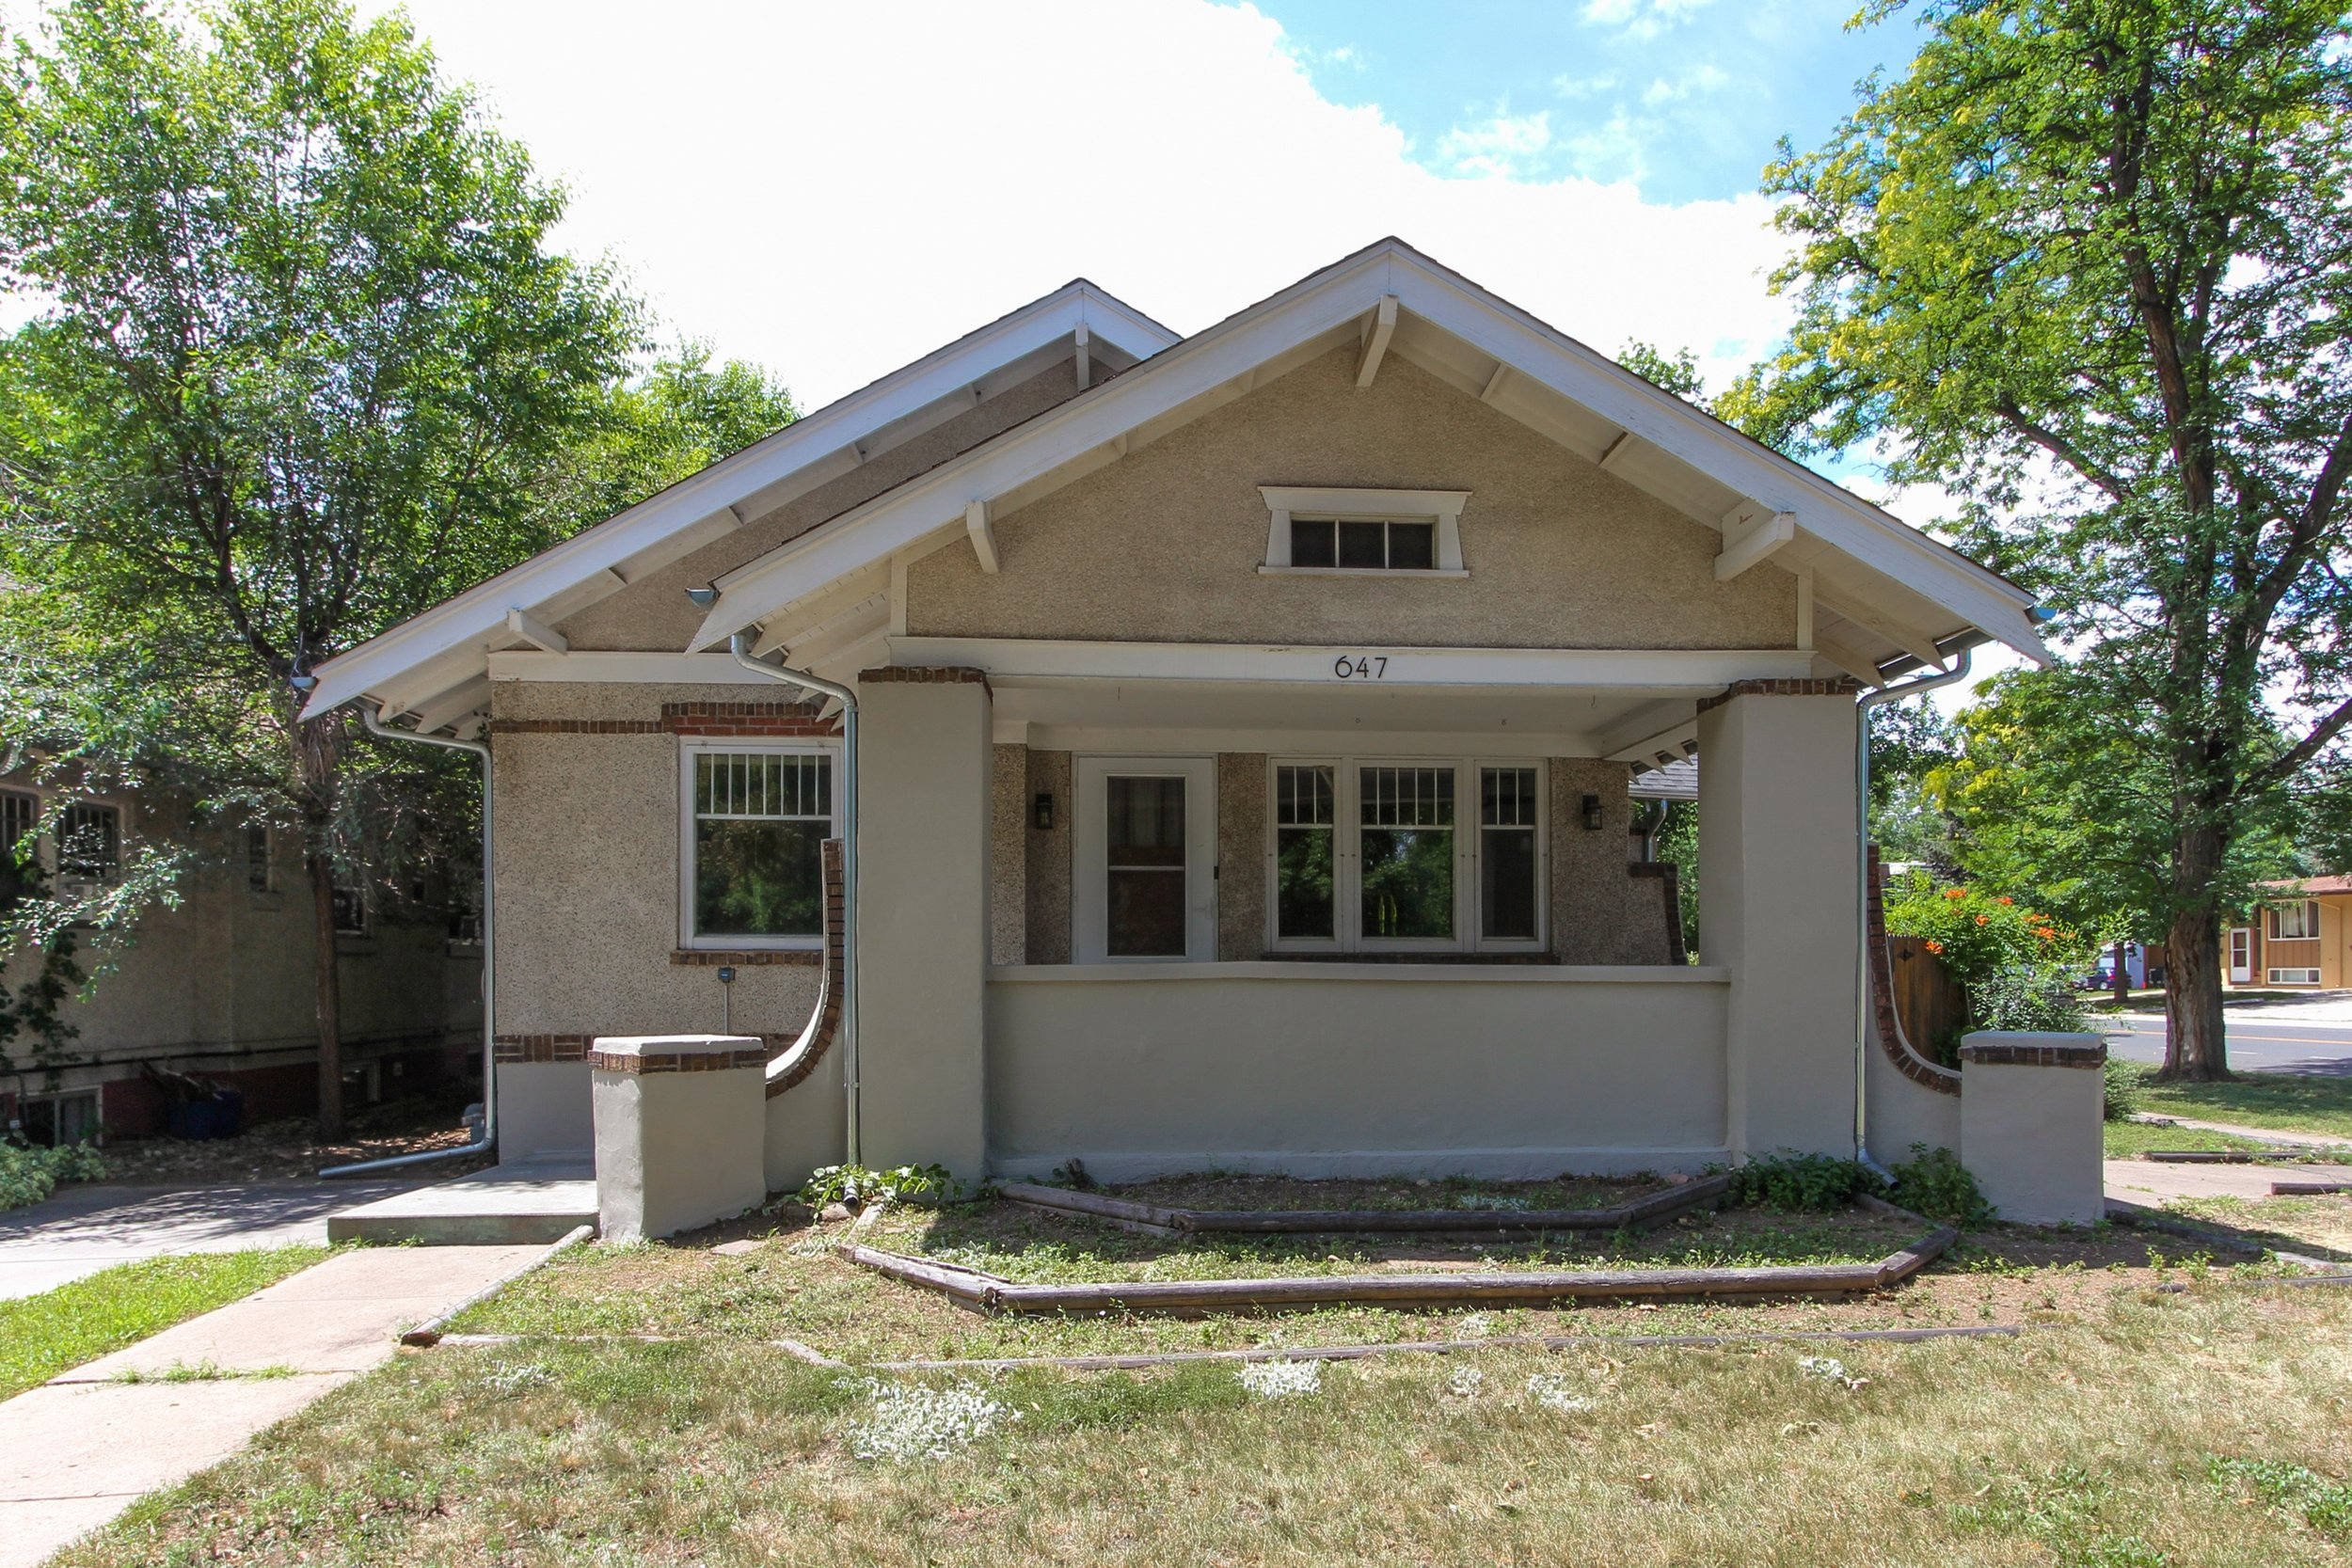 647 Collyer Street, Longmont $550,000